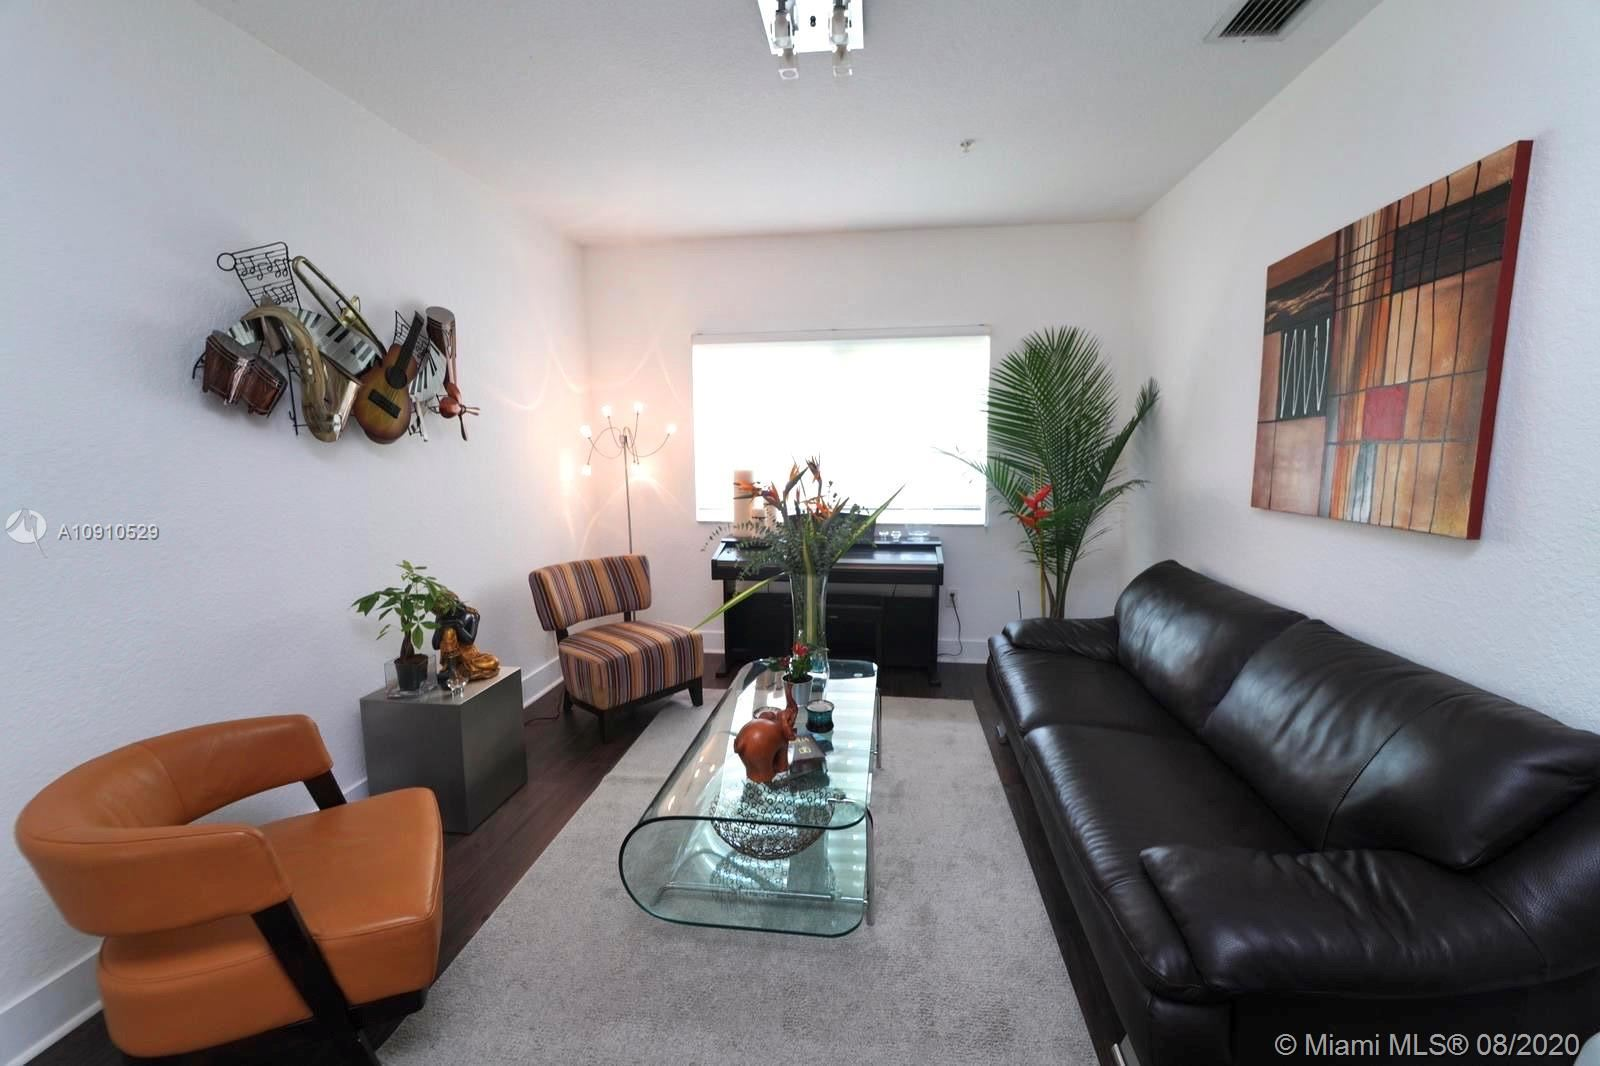 5670 NW 116 Ave #209, Doral, FL 33178 - #: A10910529